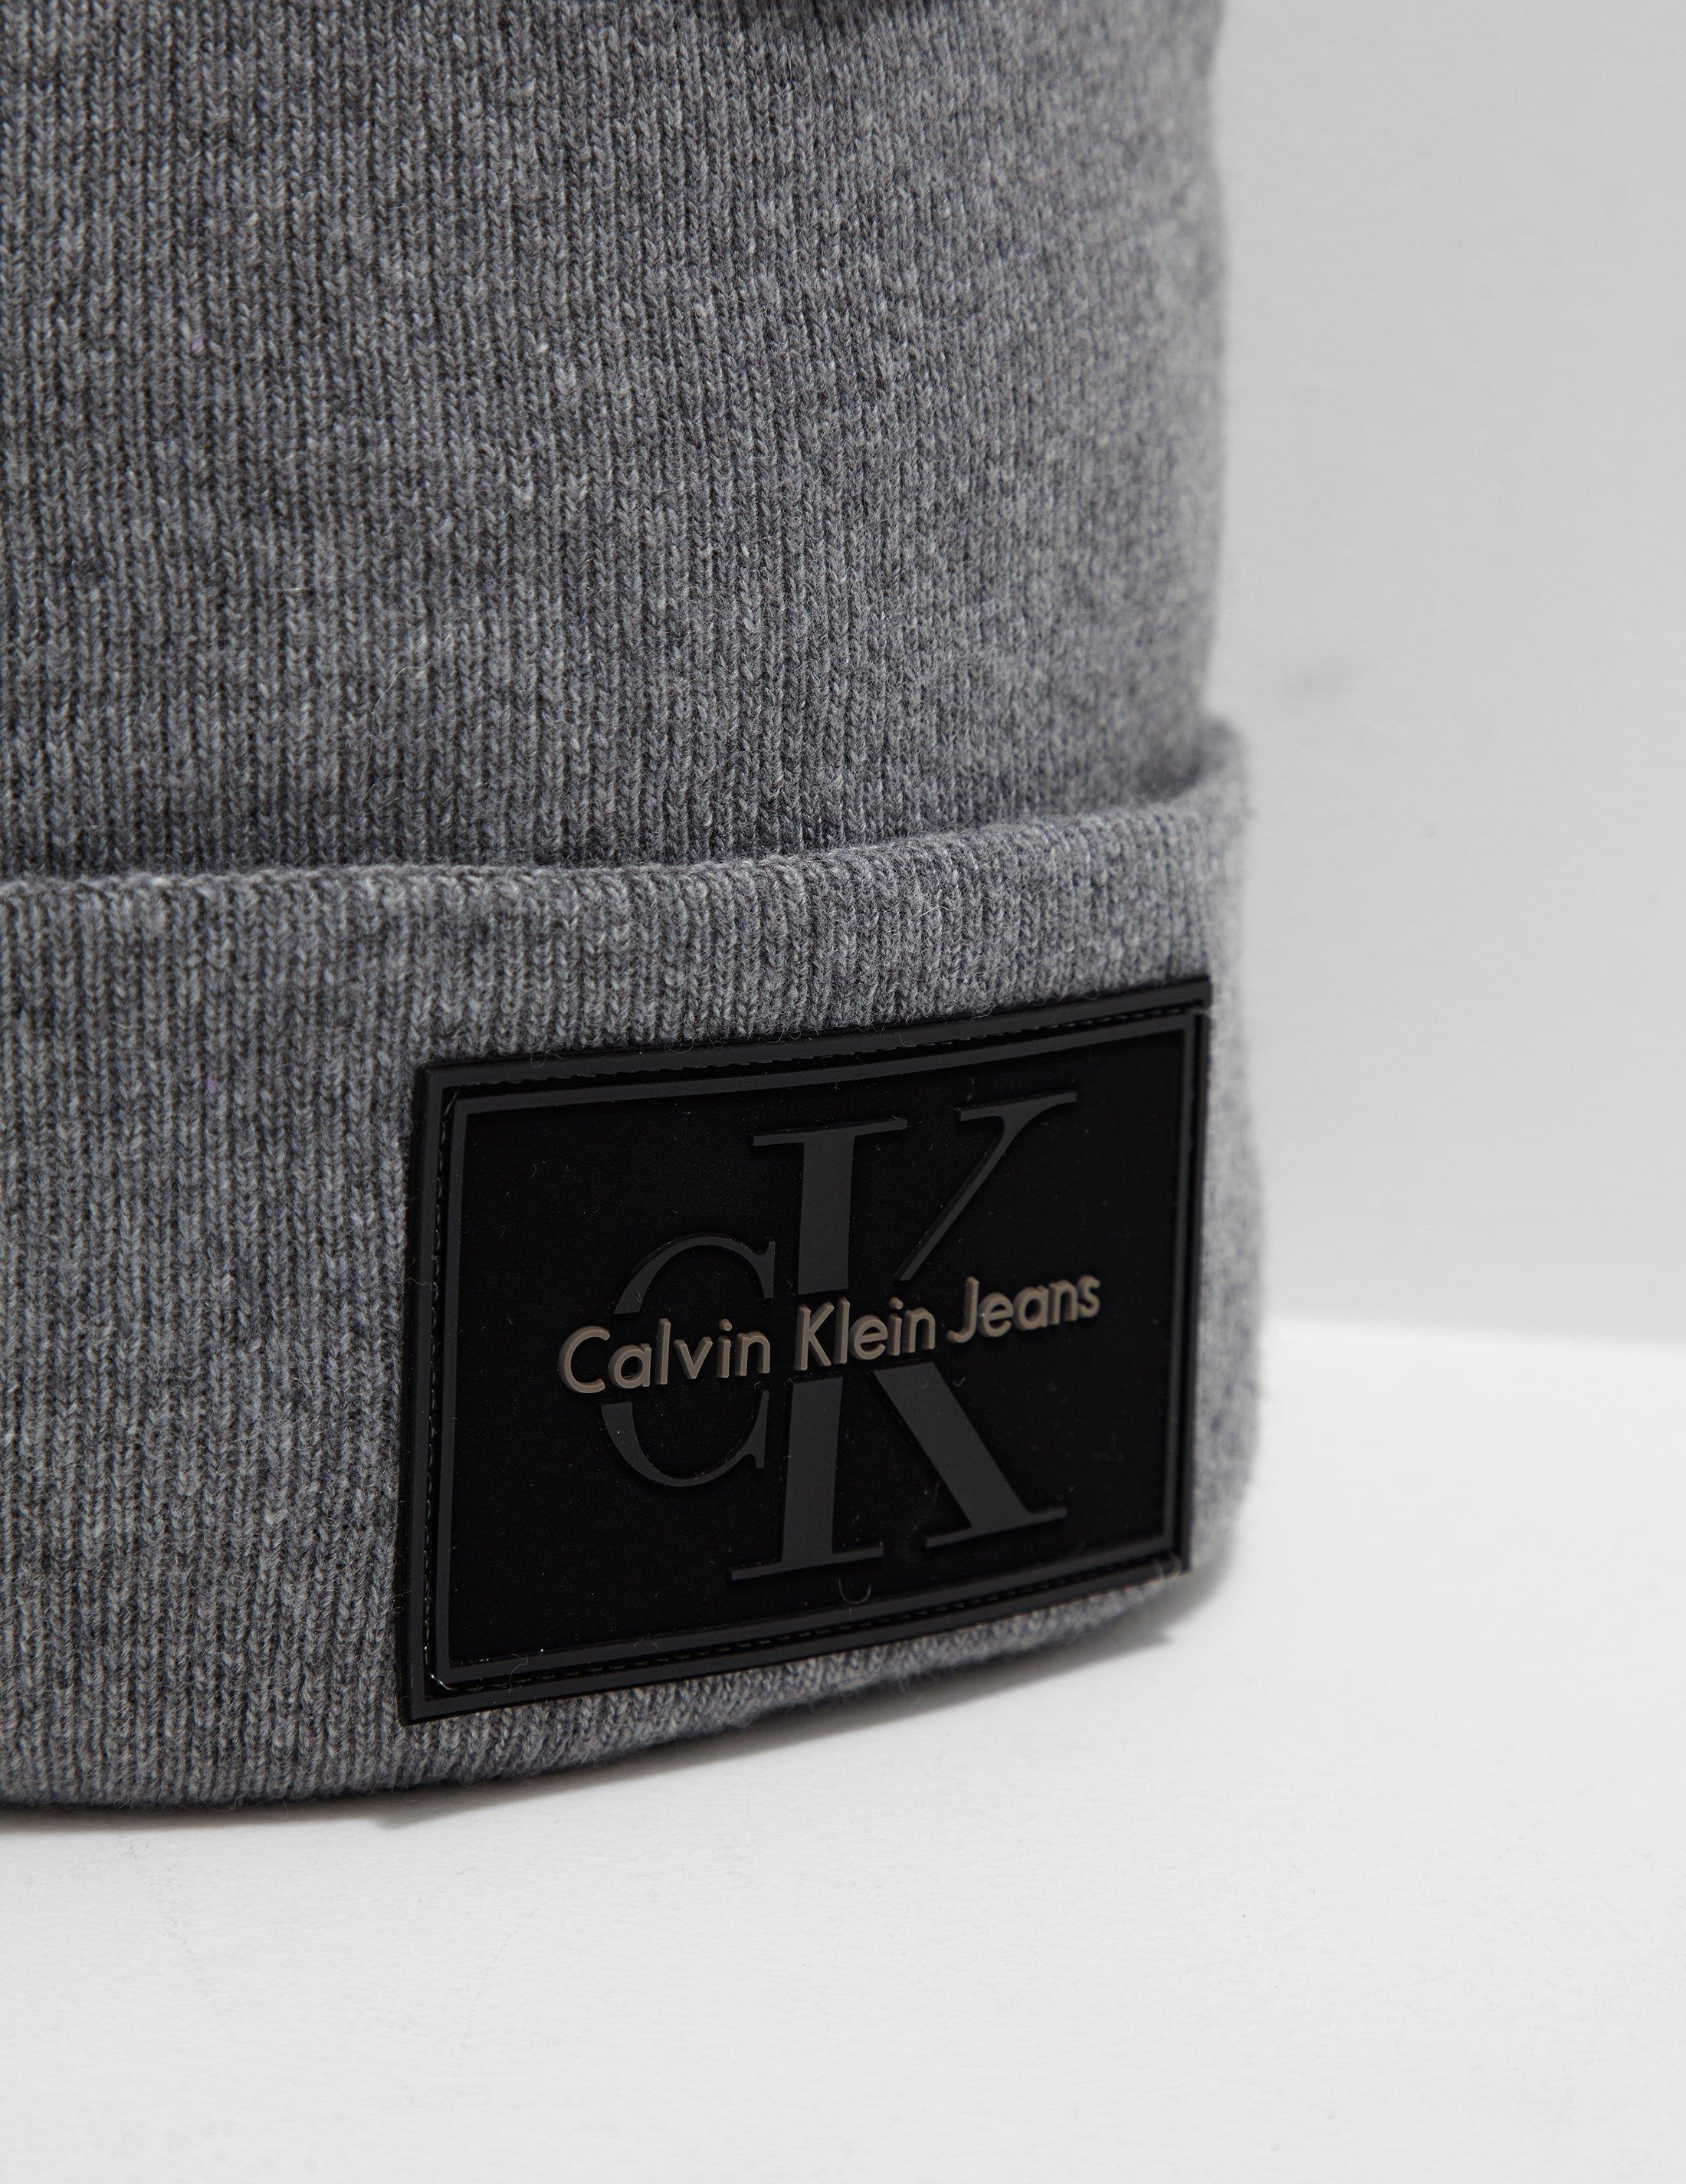 68a38f429ef Lyst - Calvin Klein Re-issue Beanie in Gray for Men - Save 57%